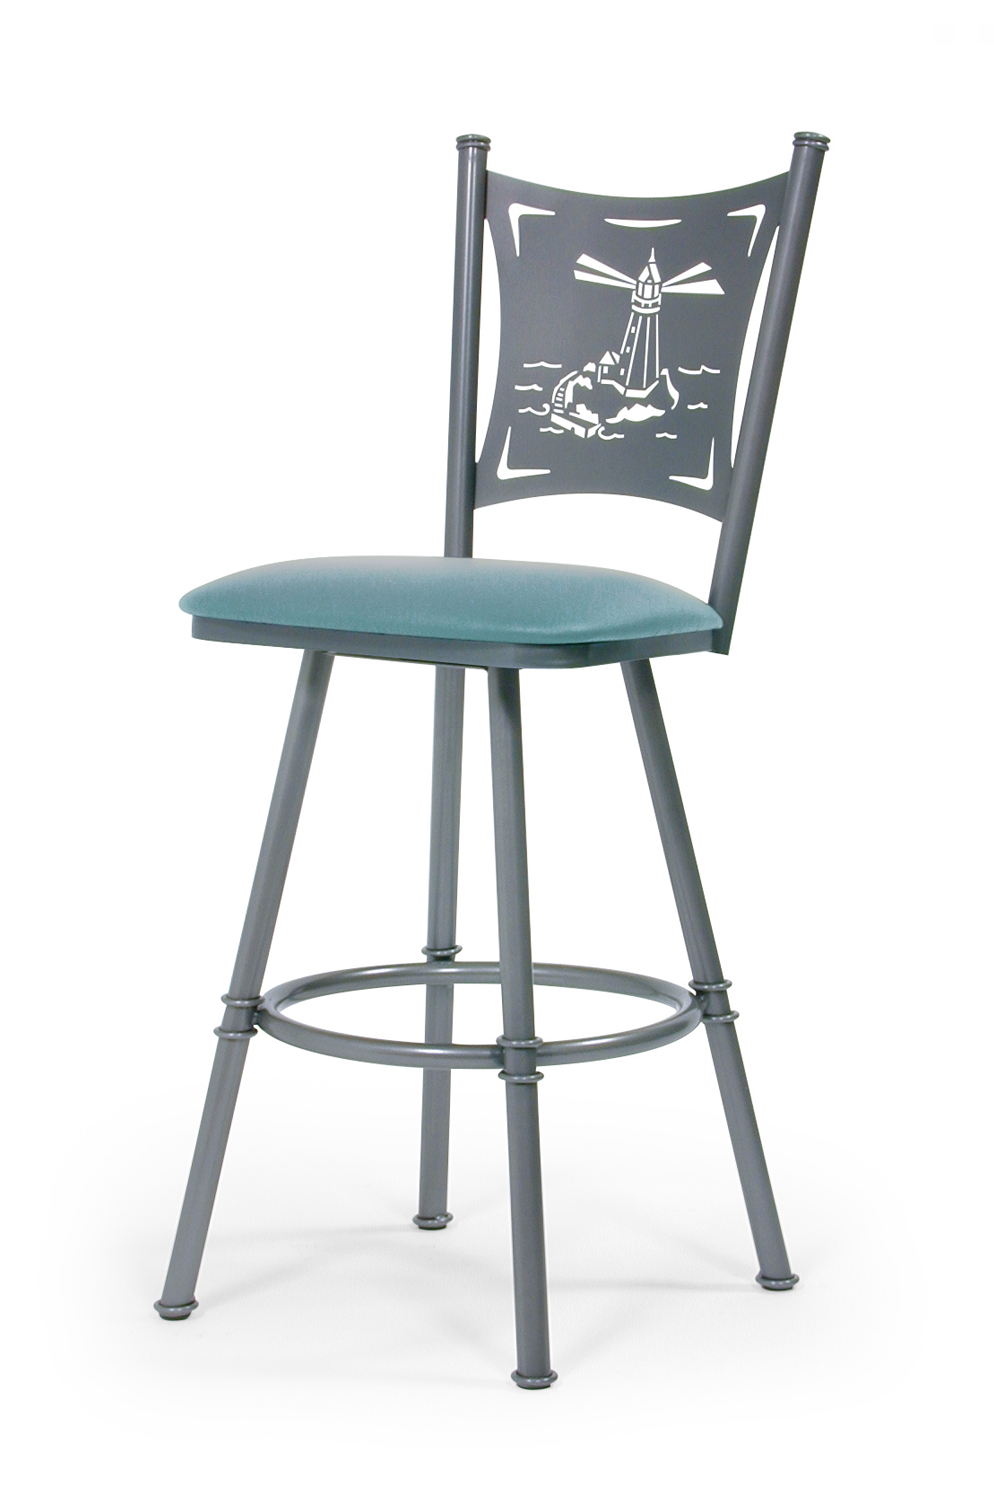 Counter Height Bar Stools With Back Upholstered